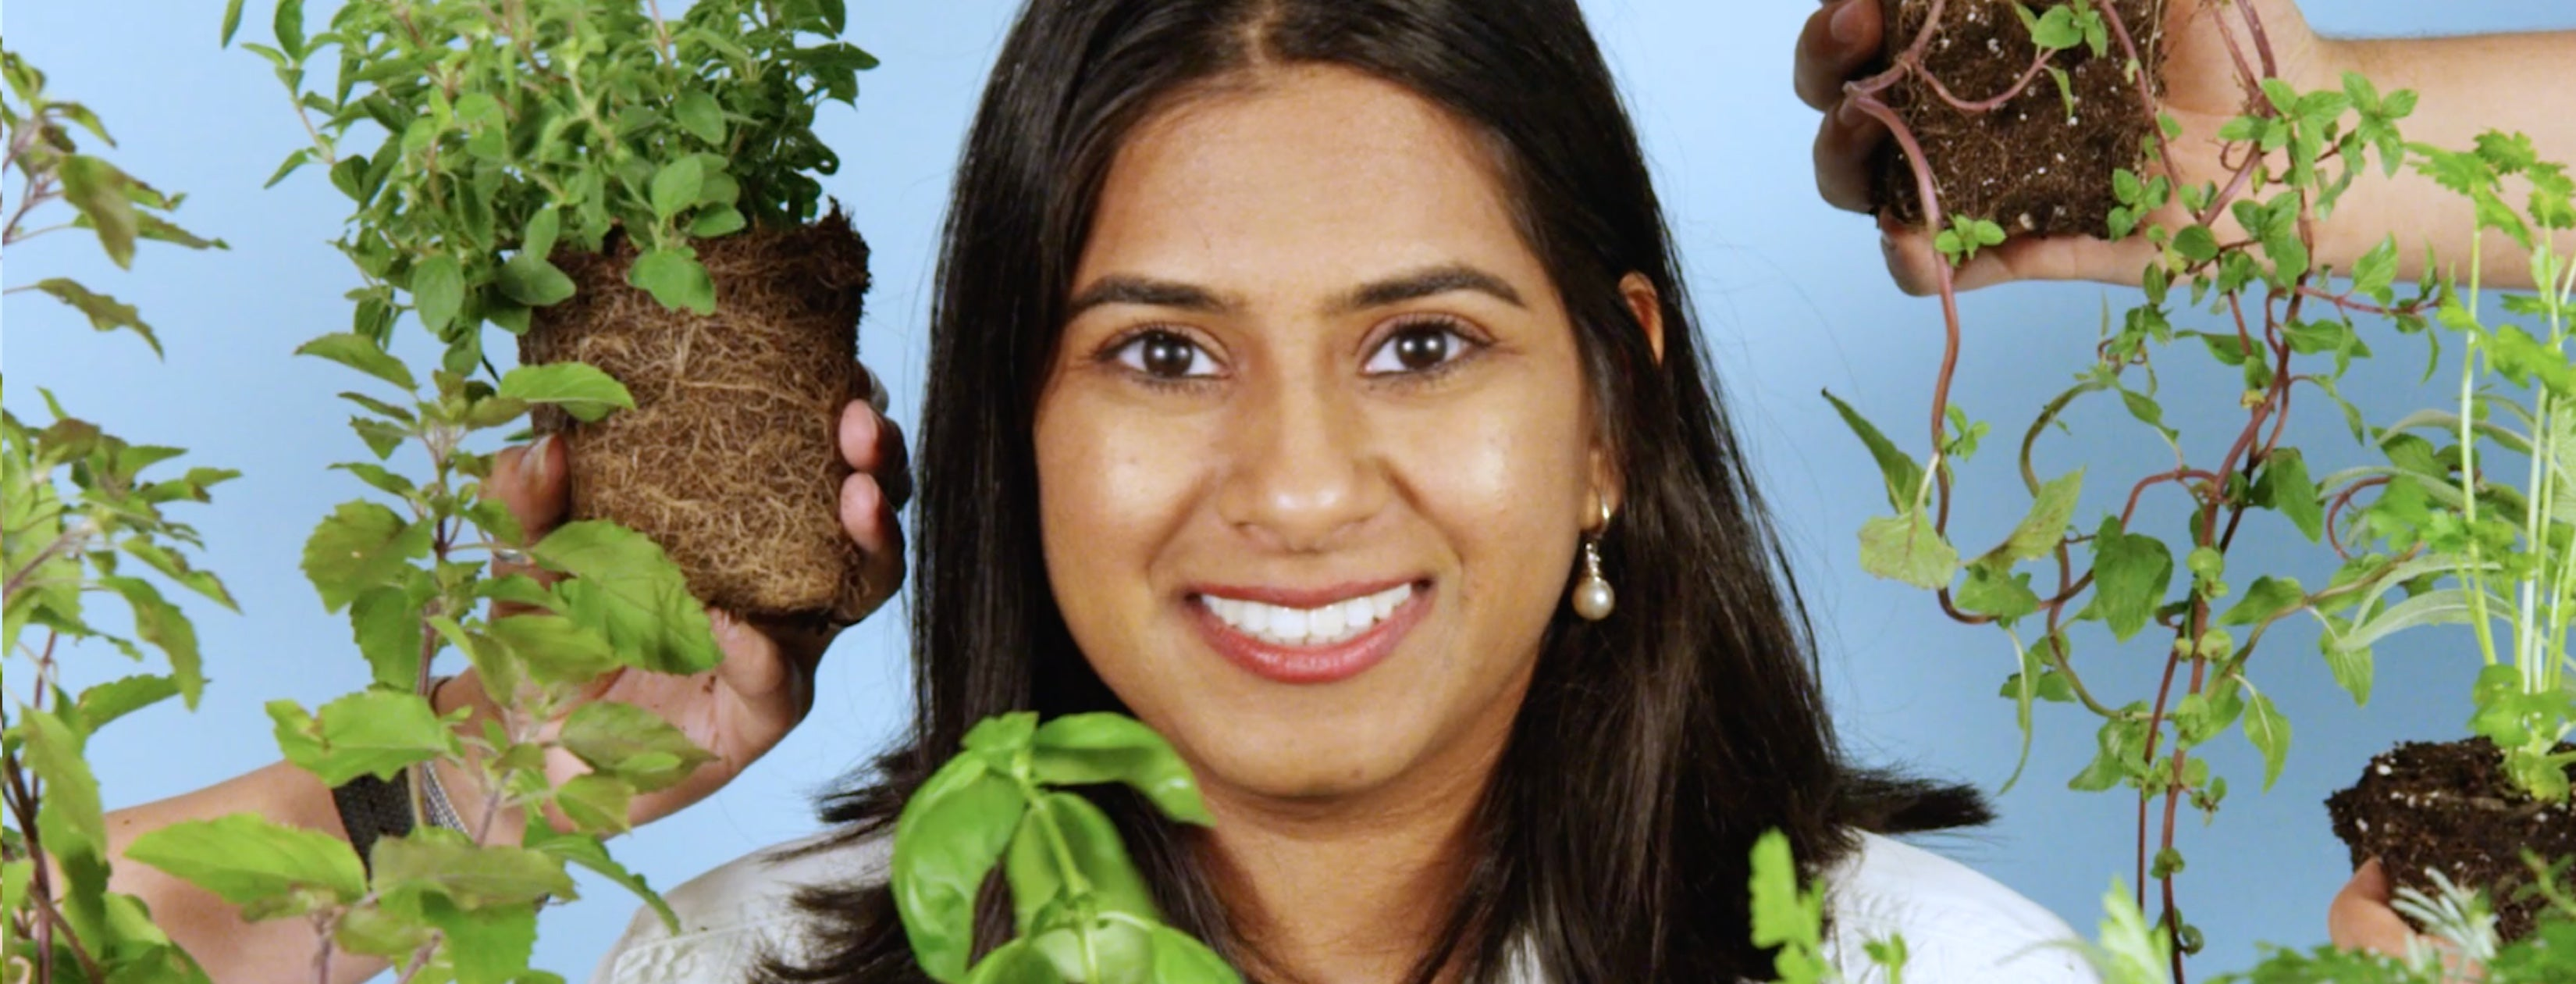 Photo of a woman, surrounded by plants, elated that she can garden worry-free